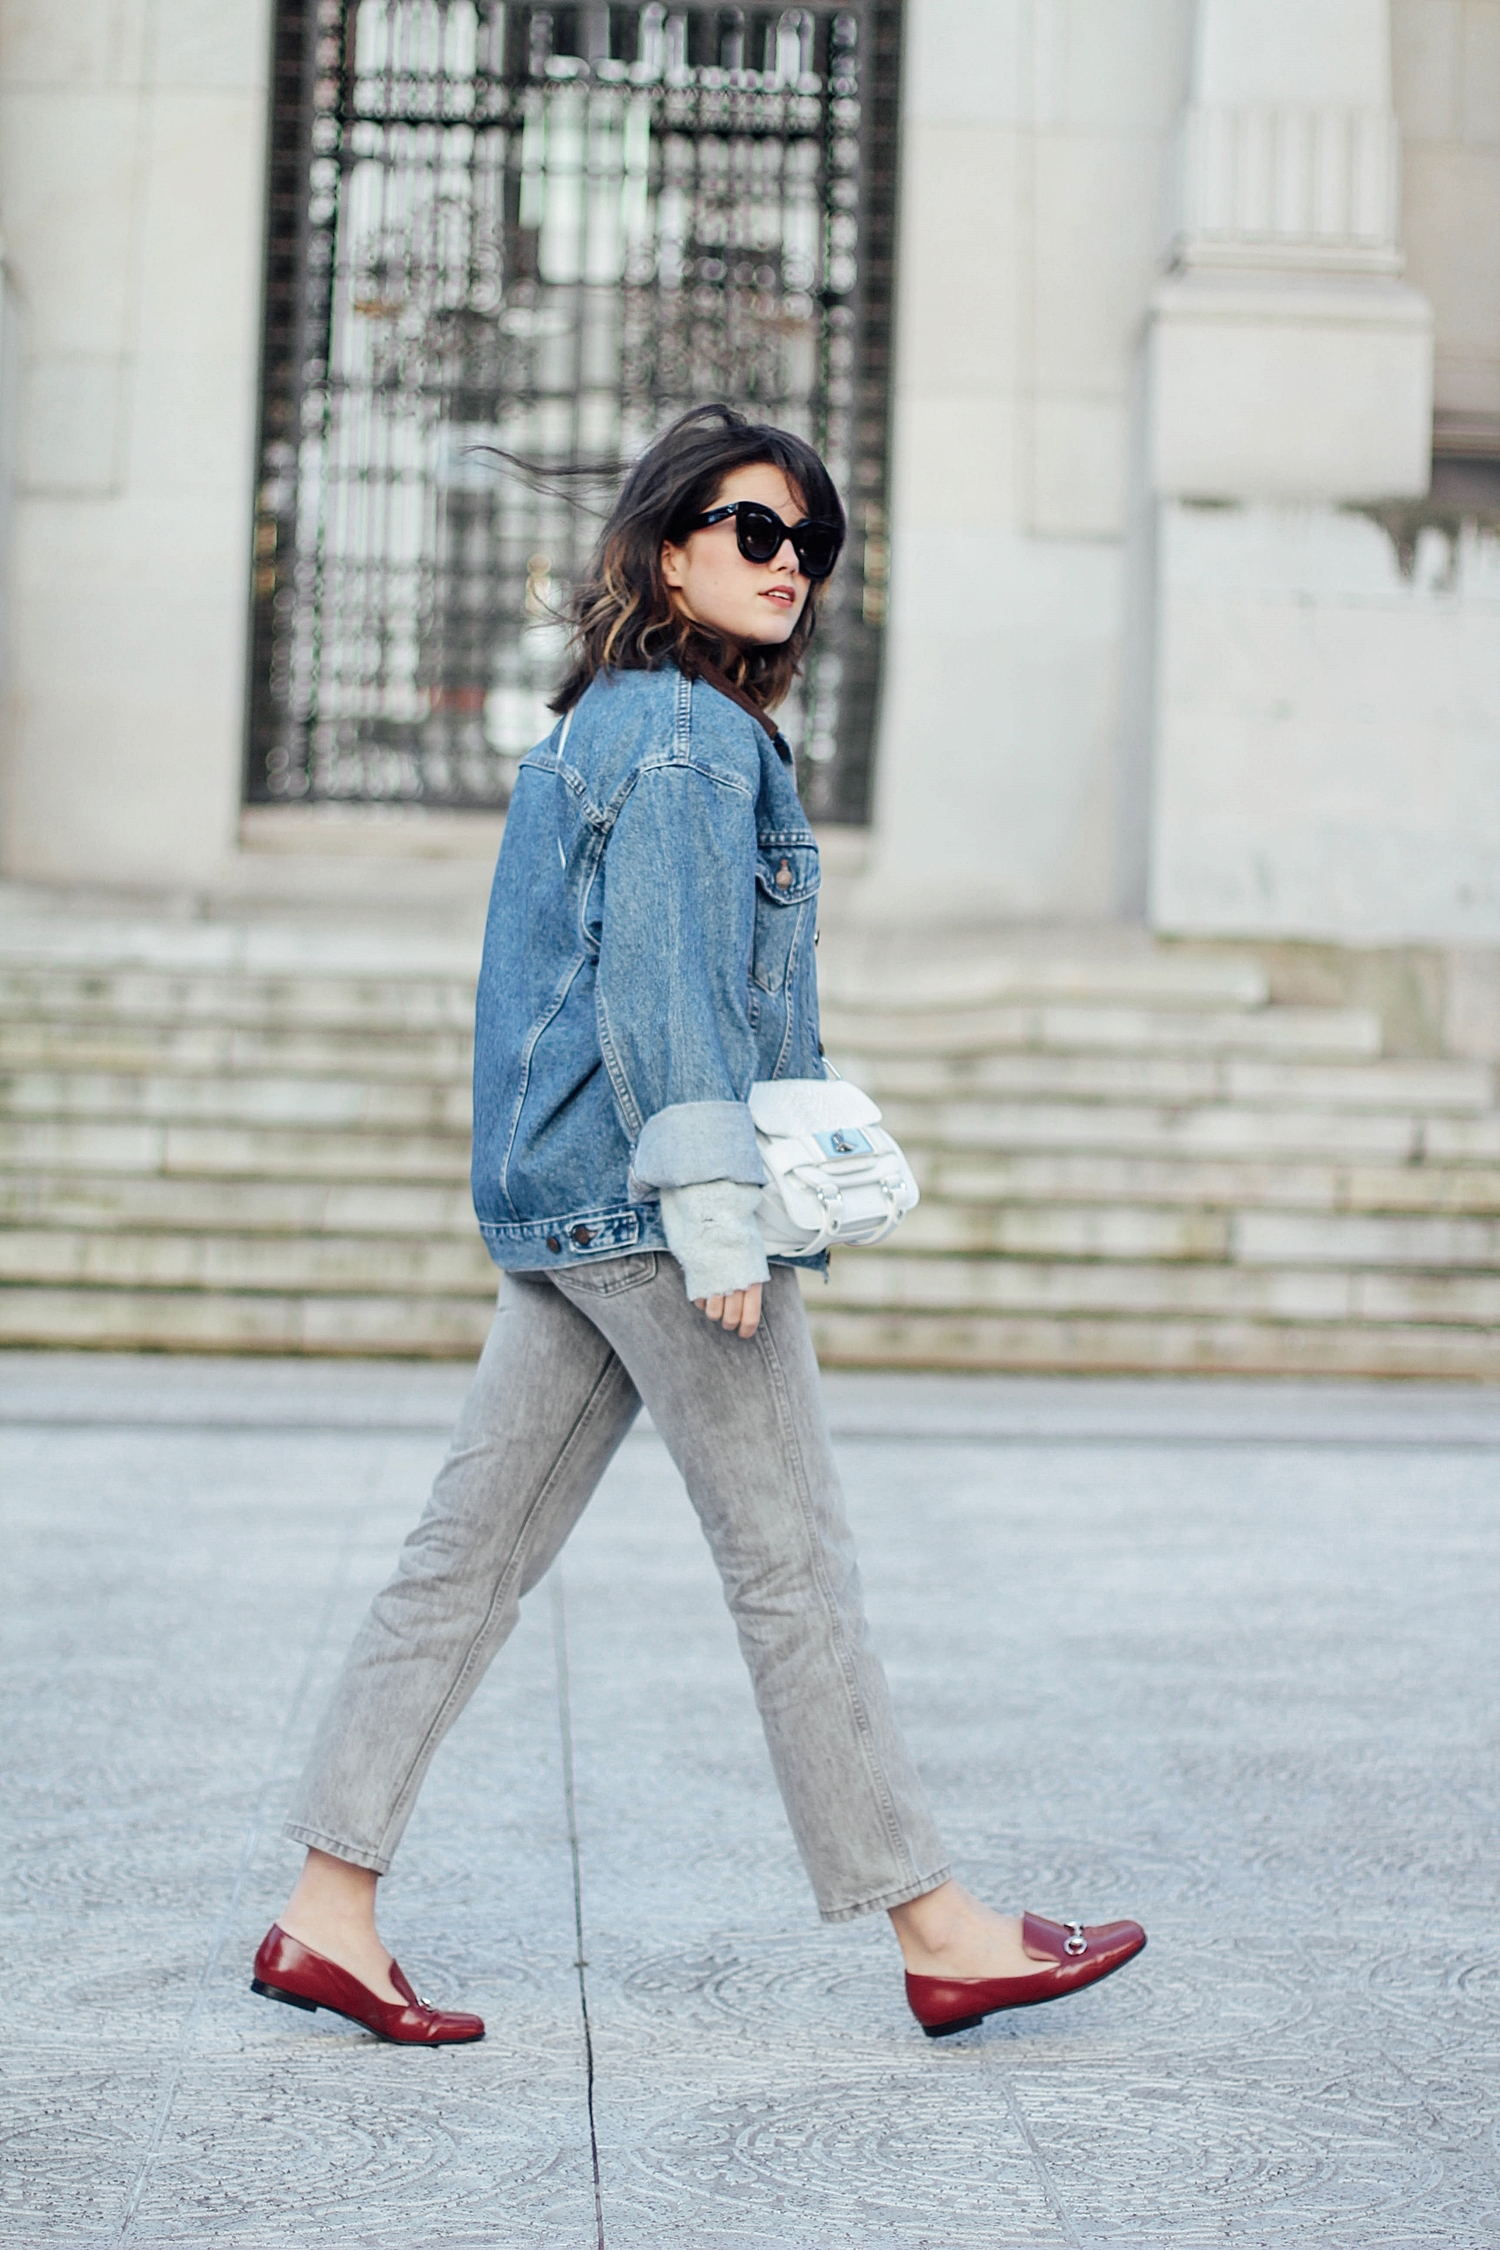 levi's denim jacket vintage_mom jeans_gucci loafers_celine sunglasses_baby marta_streetstyle